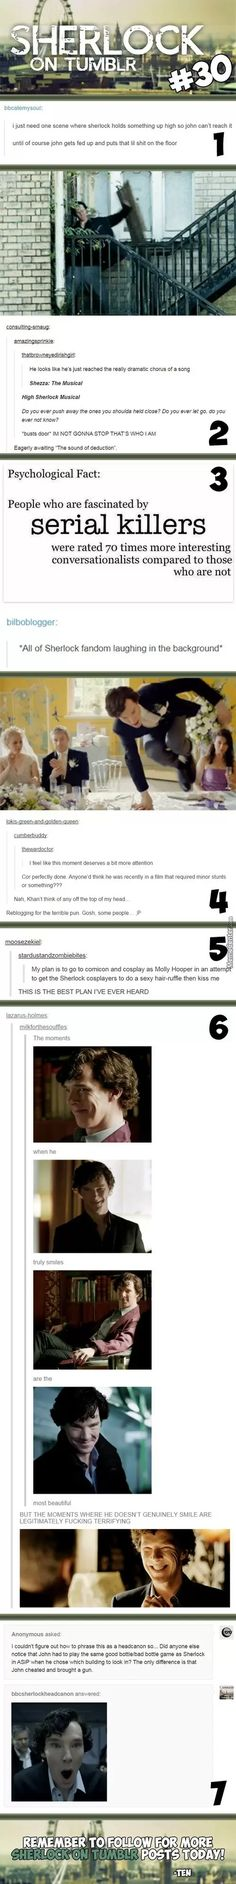 Sherlock - OMG @ the last one about John having to do a version of the good bottle vs the bad bottle. I never realized!!